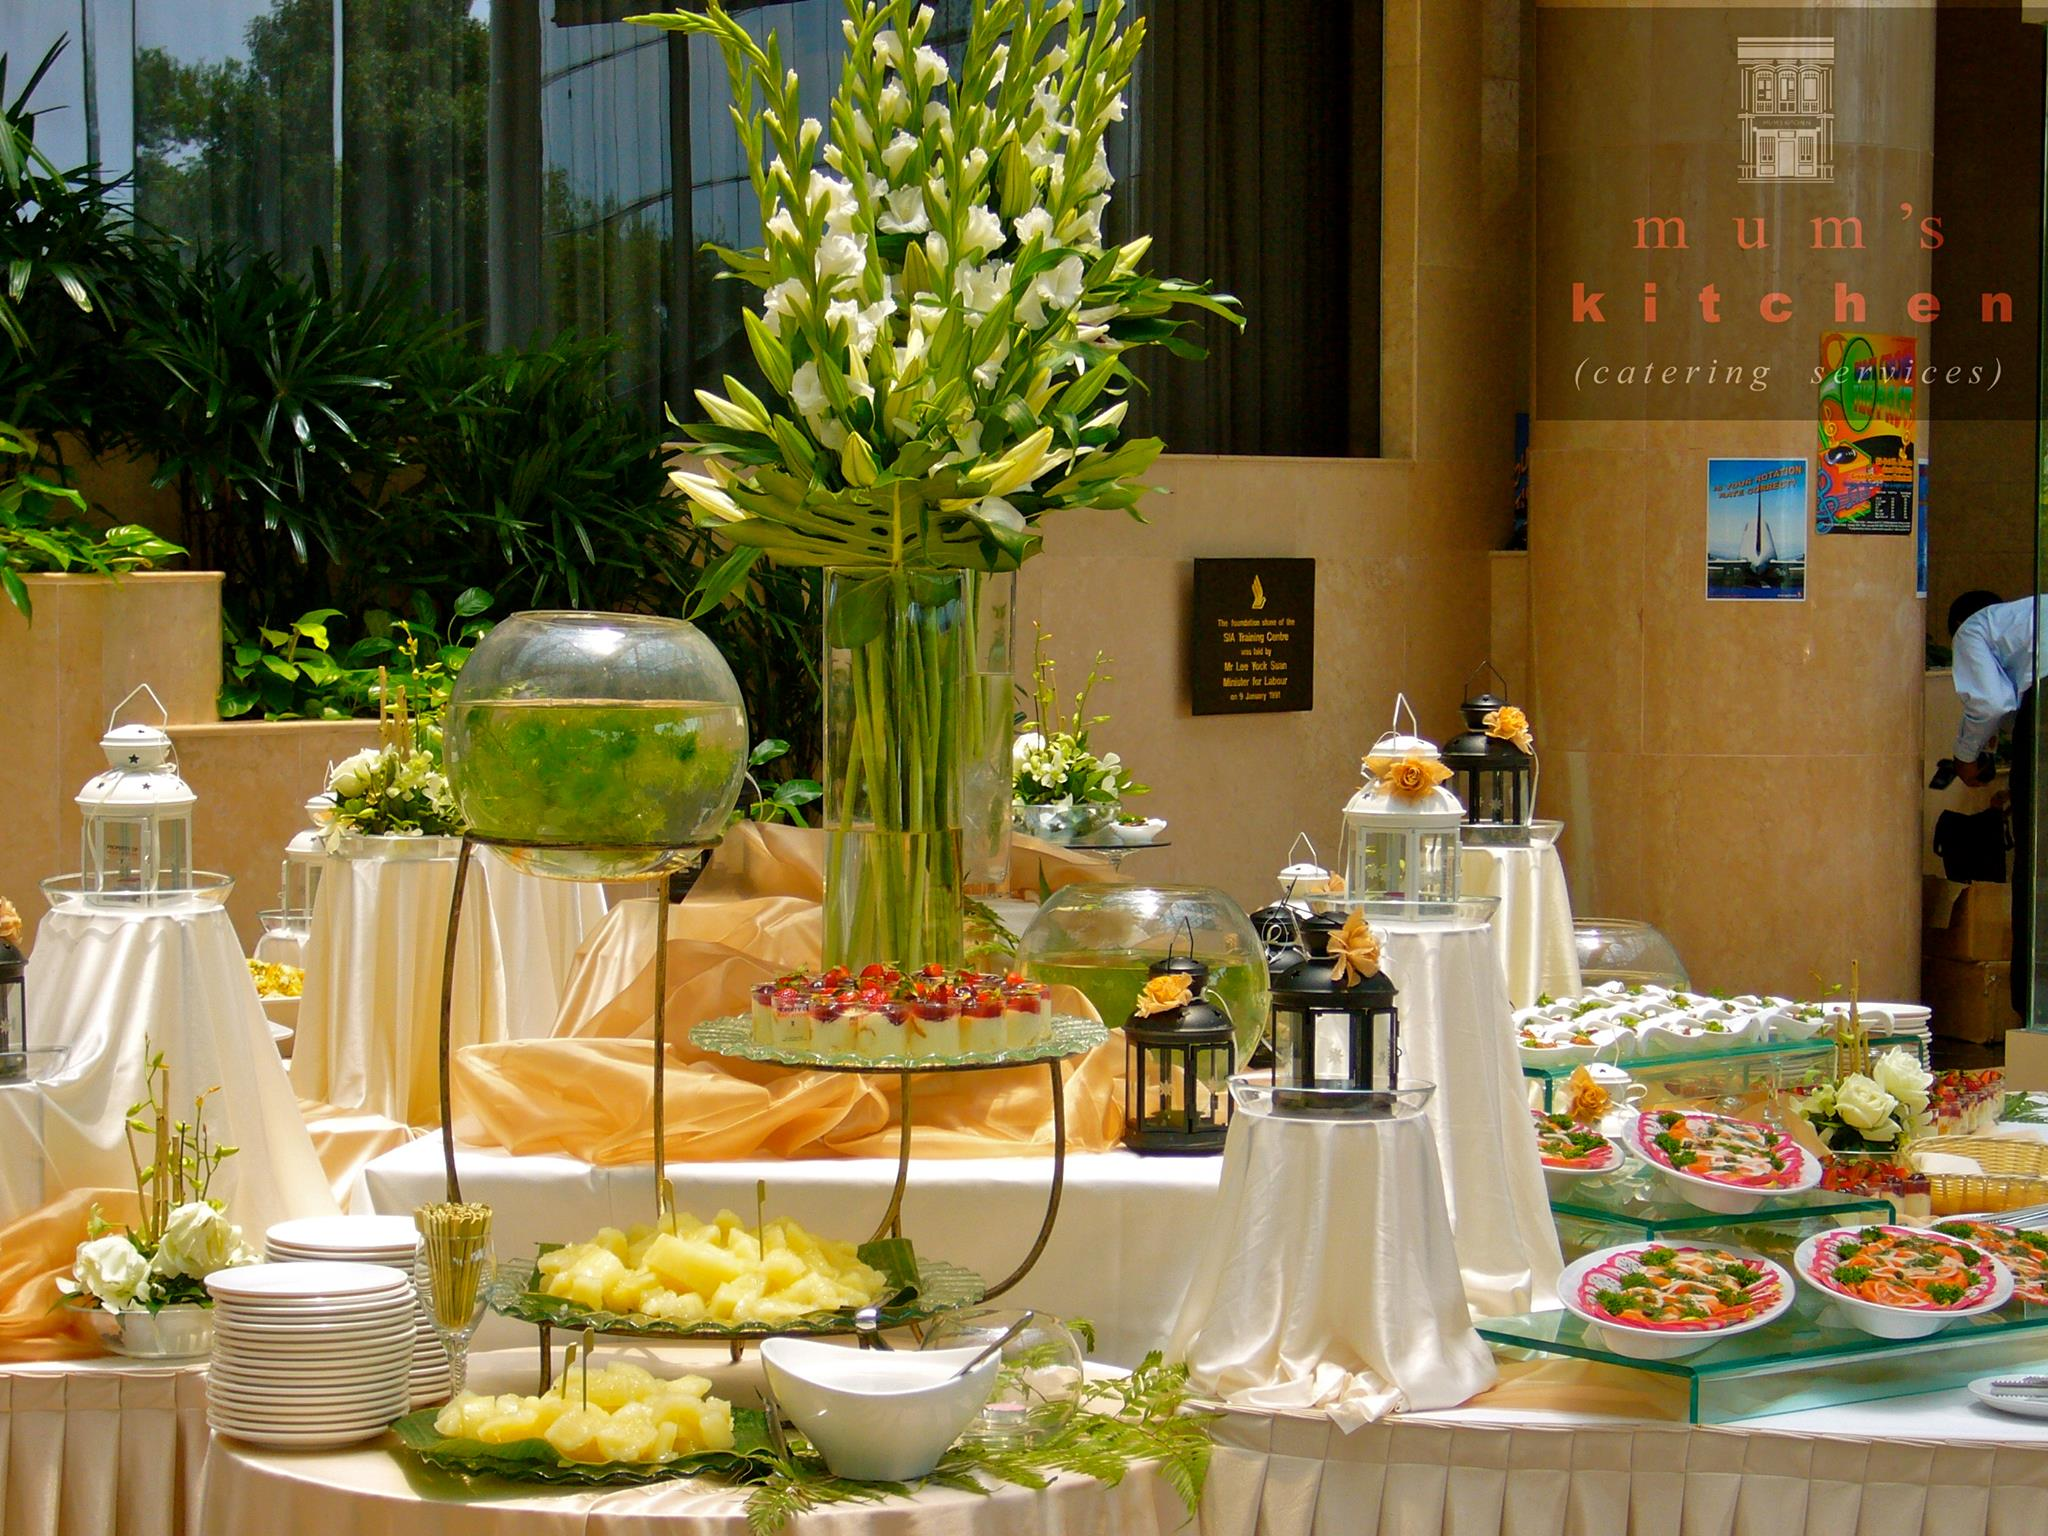 How To Decorate A Buffet: 10 Best Catering Services You Can Find In Singapore